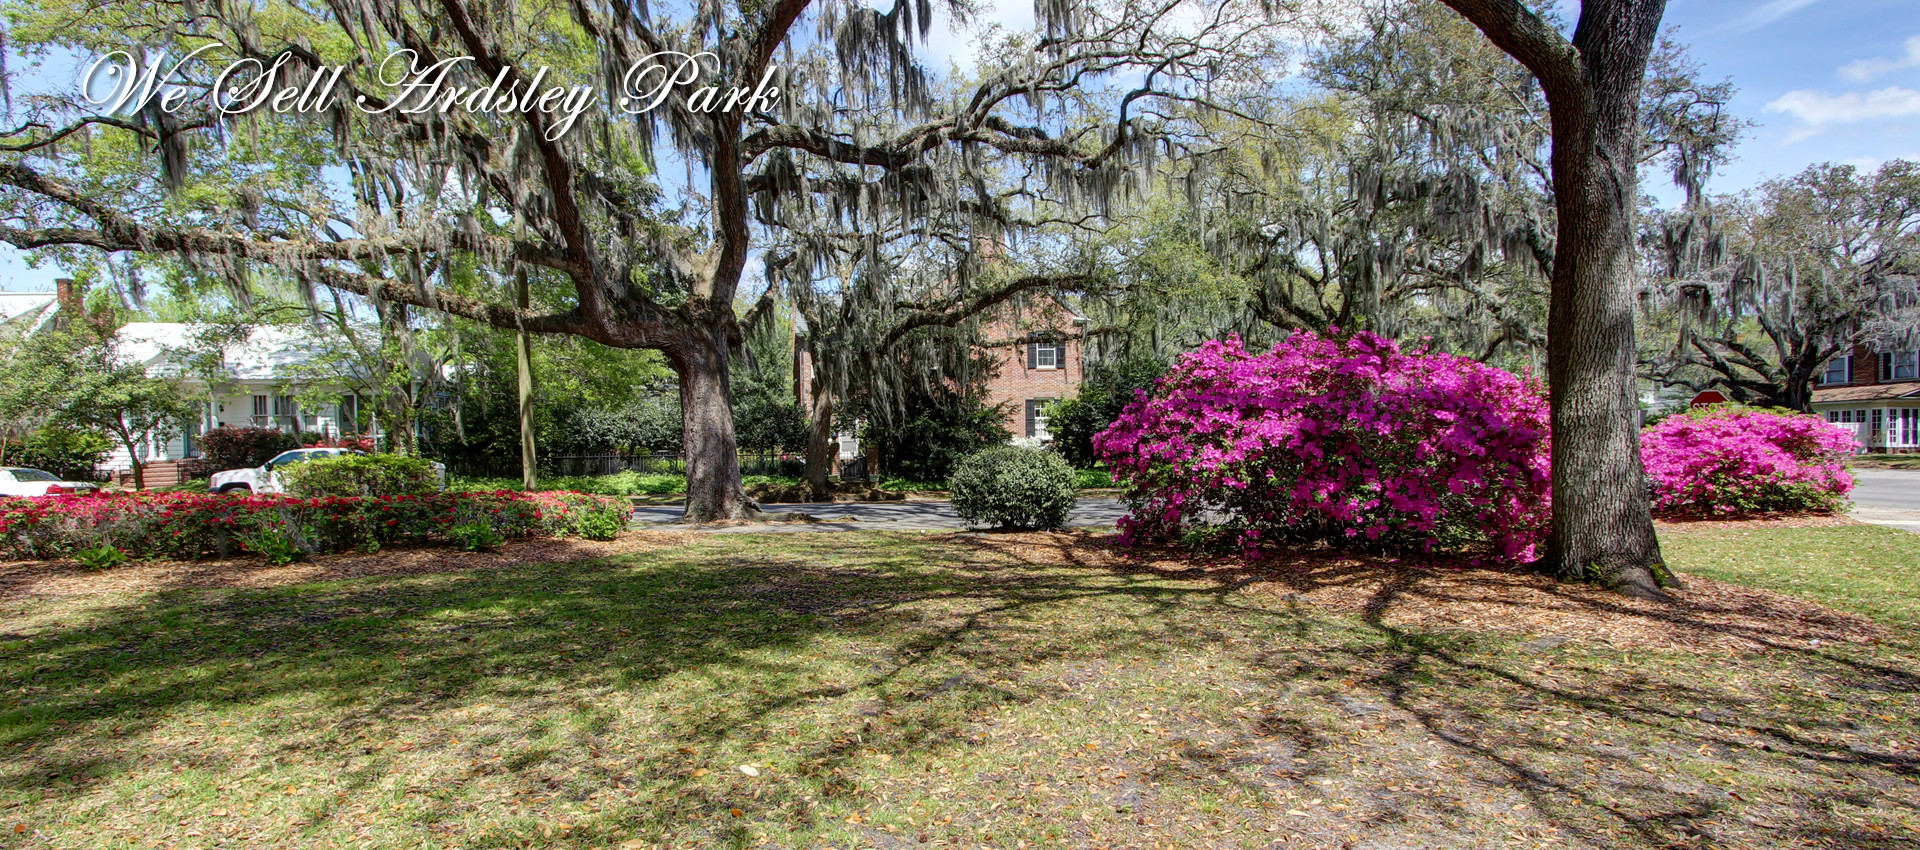 Houses for Sale in Ardsley Park, Savannah, GA